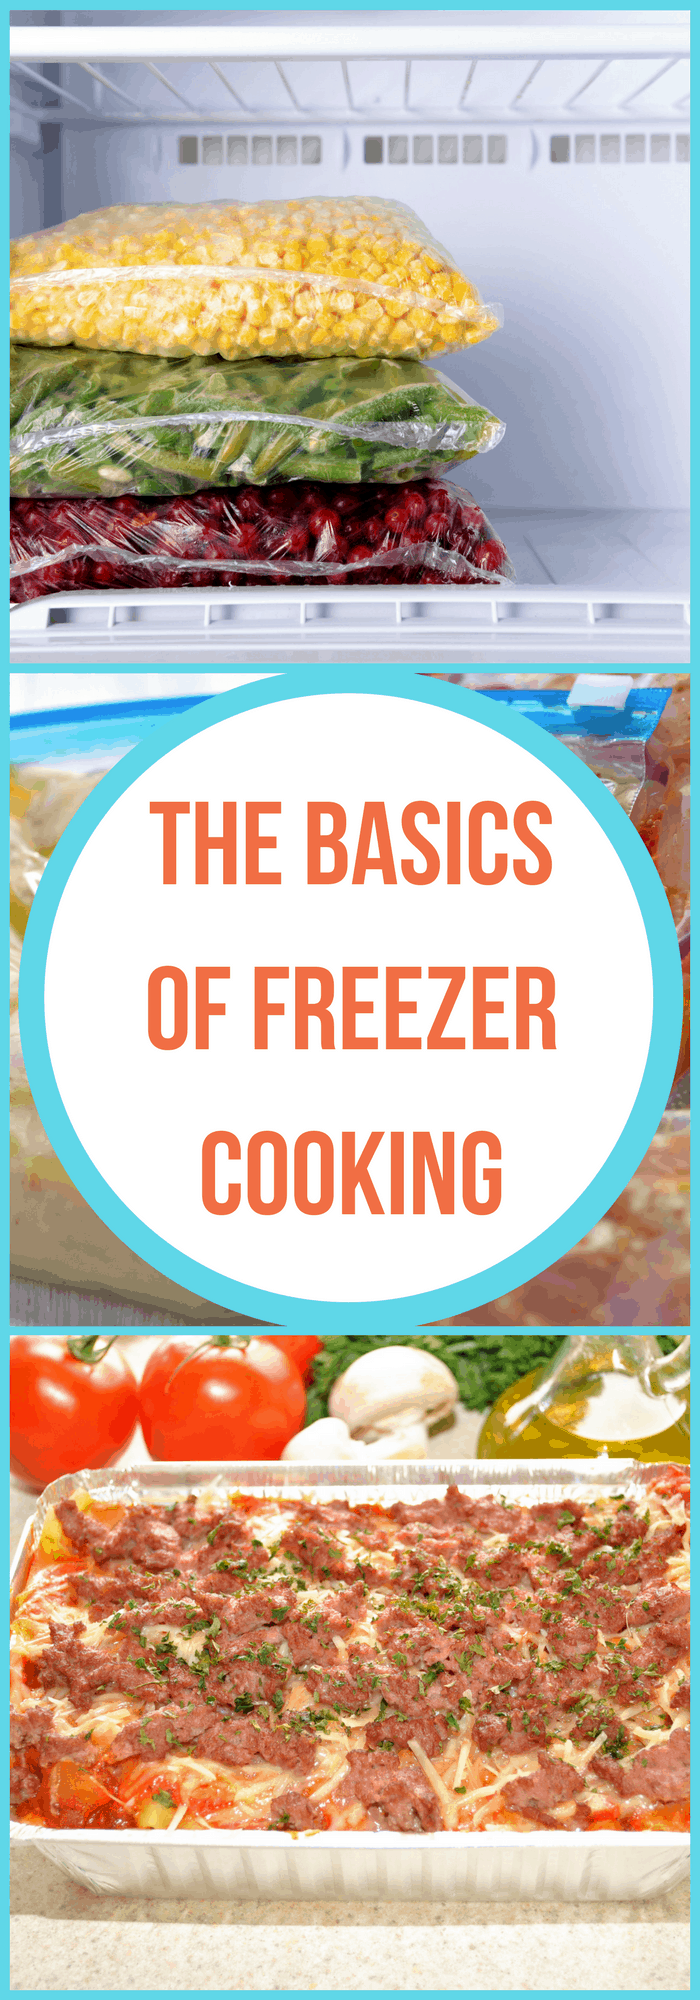 Cooking-The Basics of Freezer Cooking--The Organized Mom